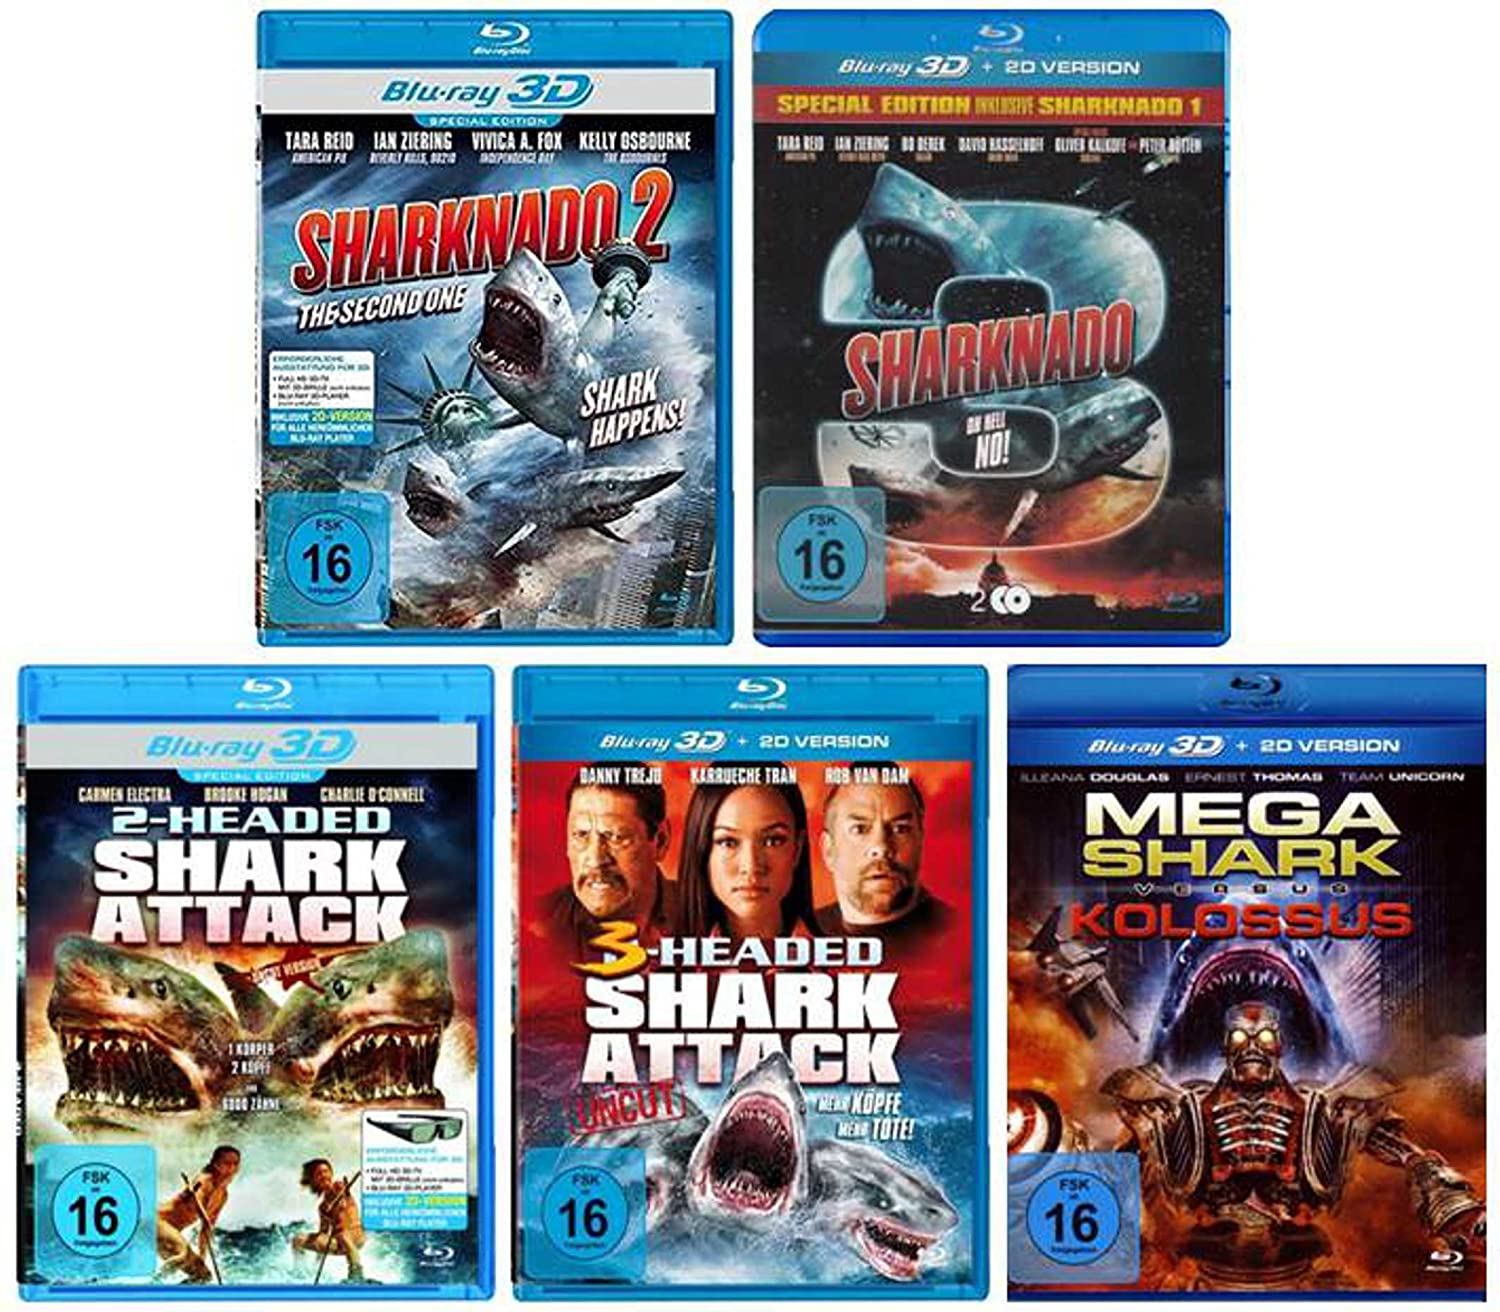 Best of Shark Collection - 3D Blu-ray incl. Sharknado 1-3 und 2+3 ...